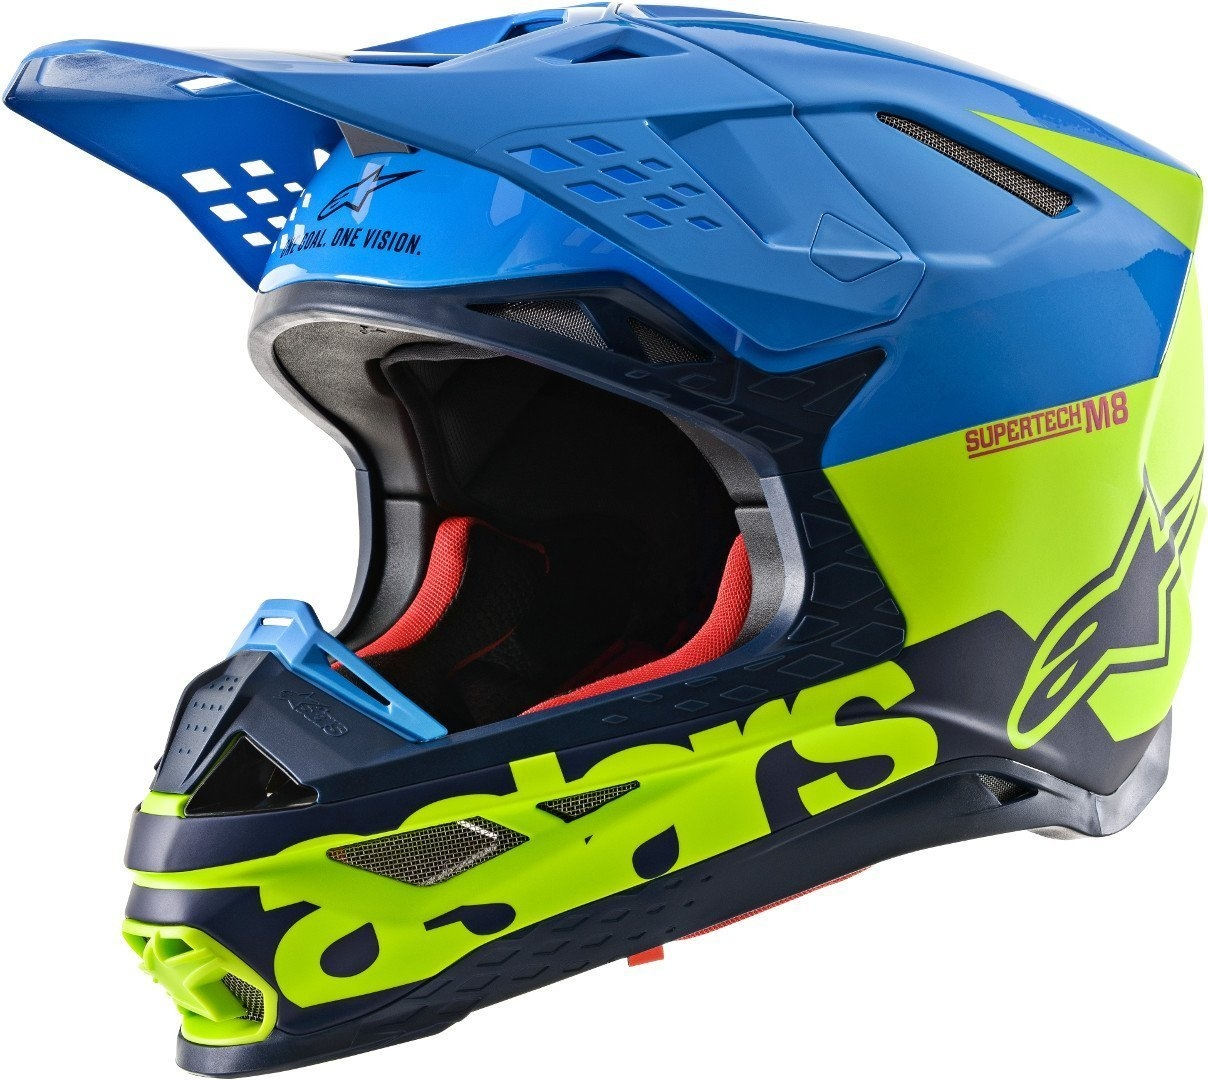 Casco cross Alpinestars Supertech S-M8 RADIUM Aqua Yellow flow Navy M&G 1